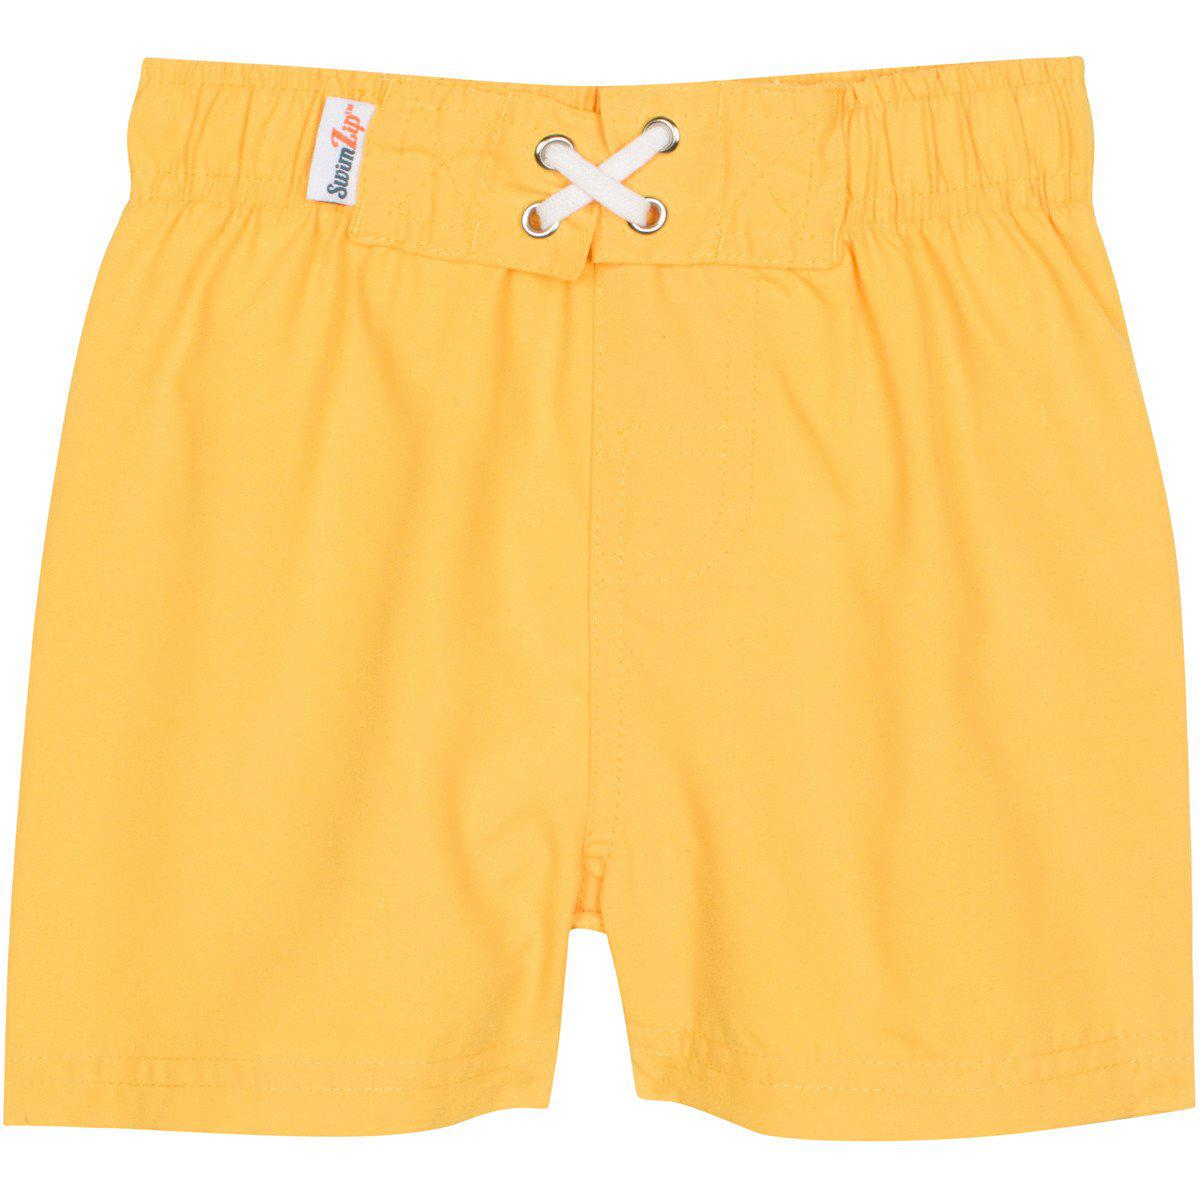 Yellow UV Swim Trunks by SwimZip